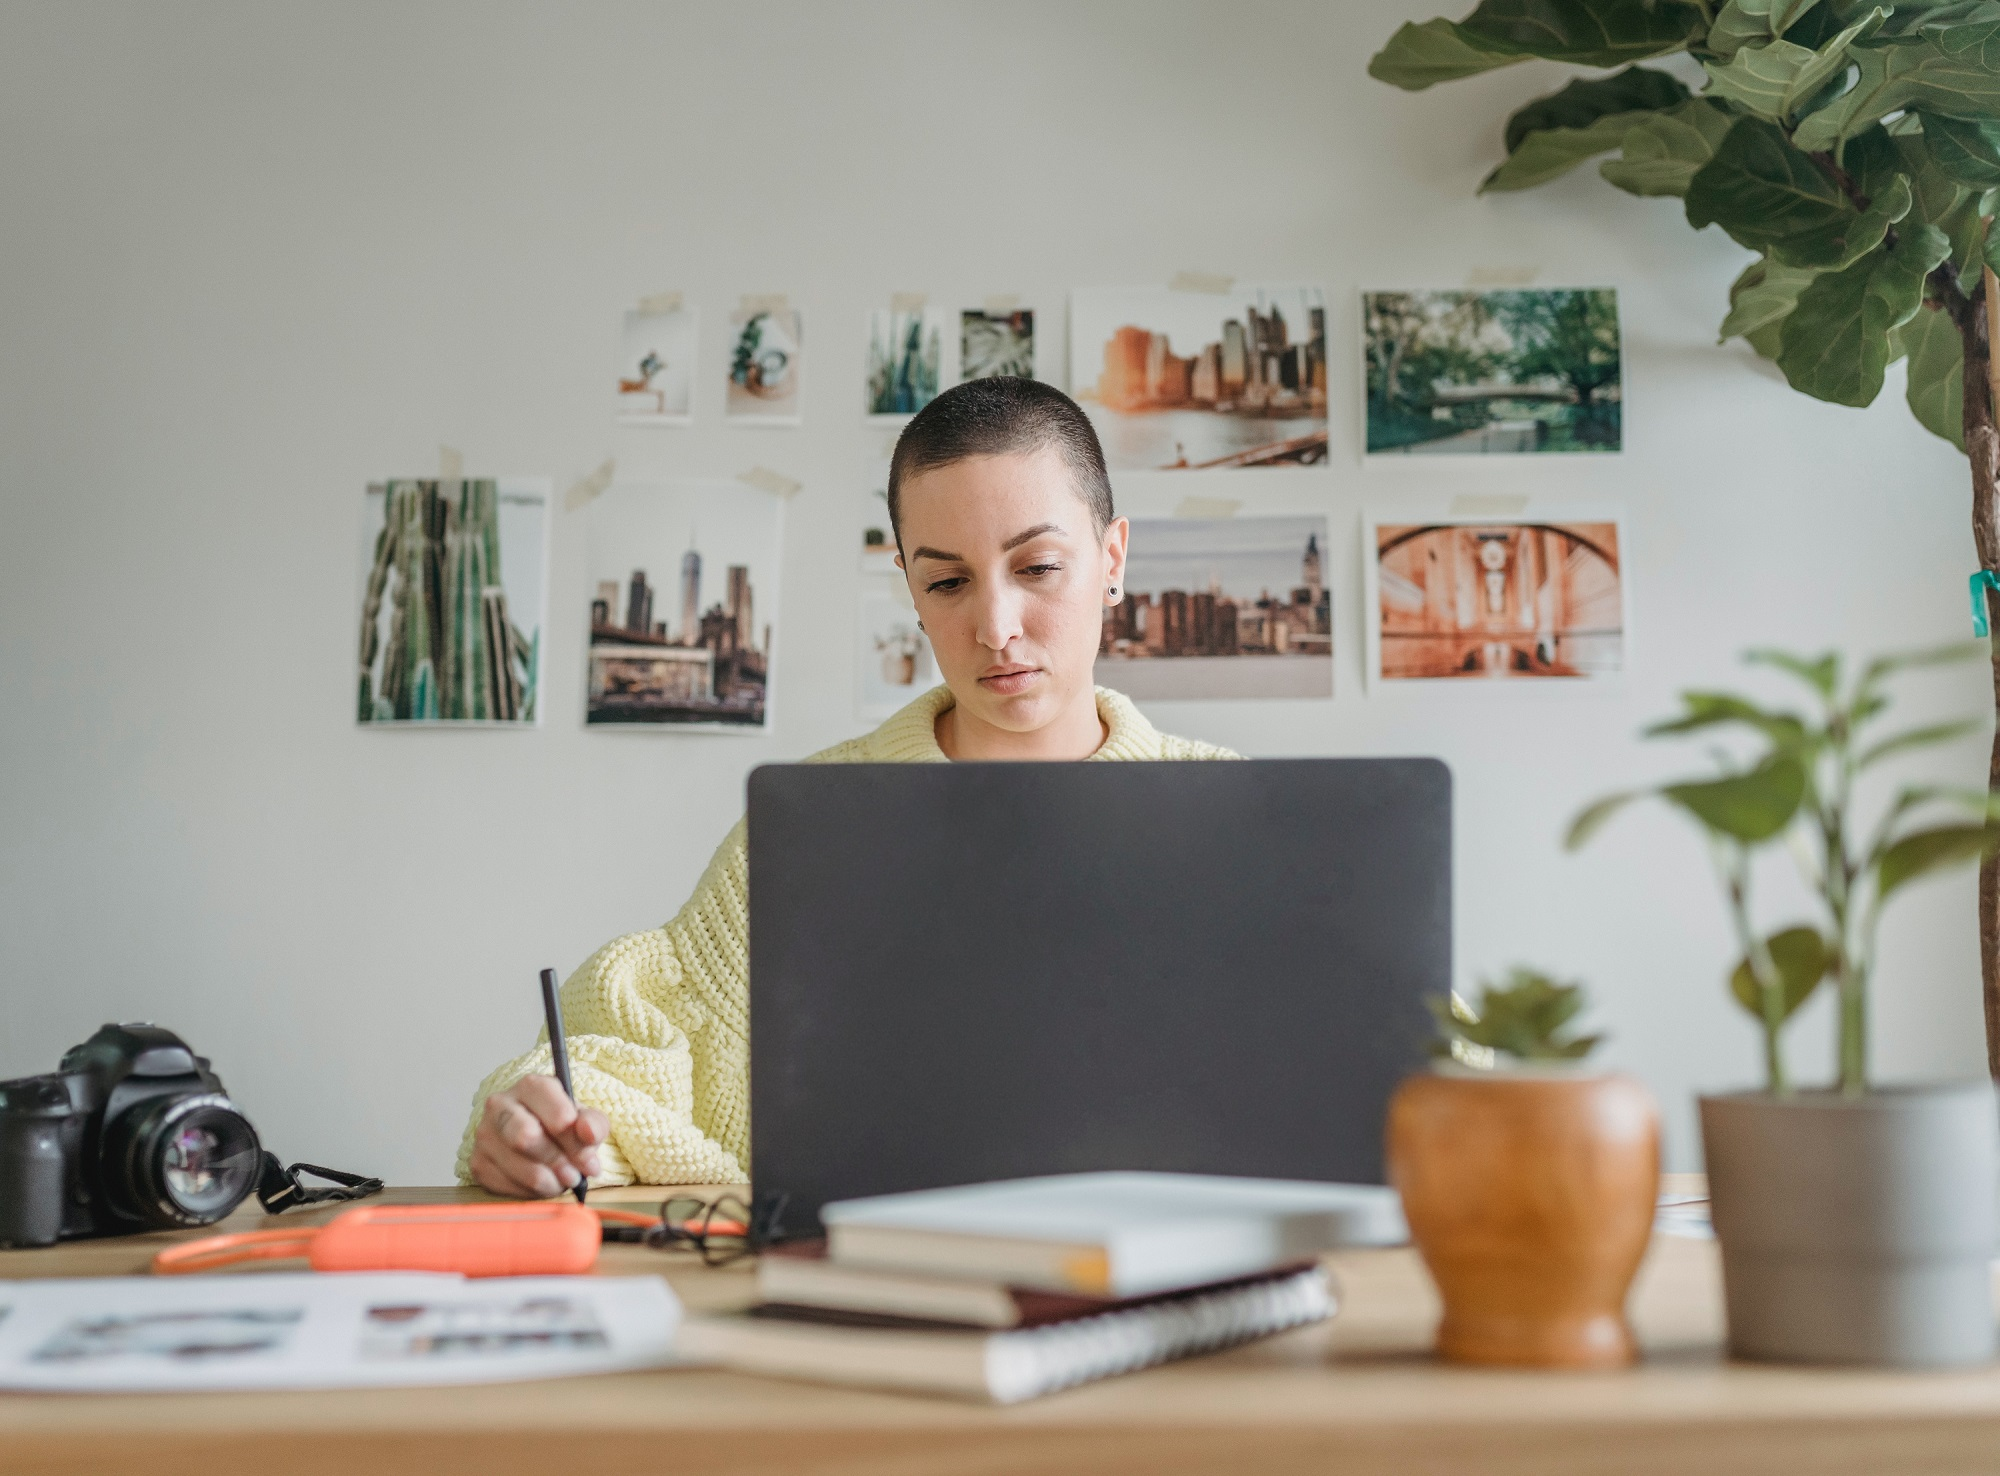 Image: employee working from home